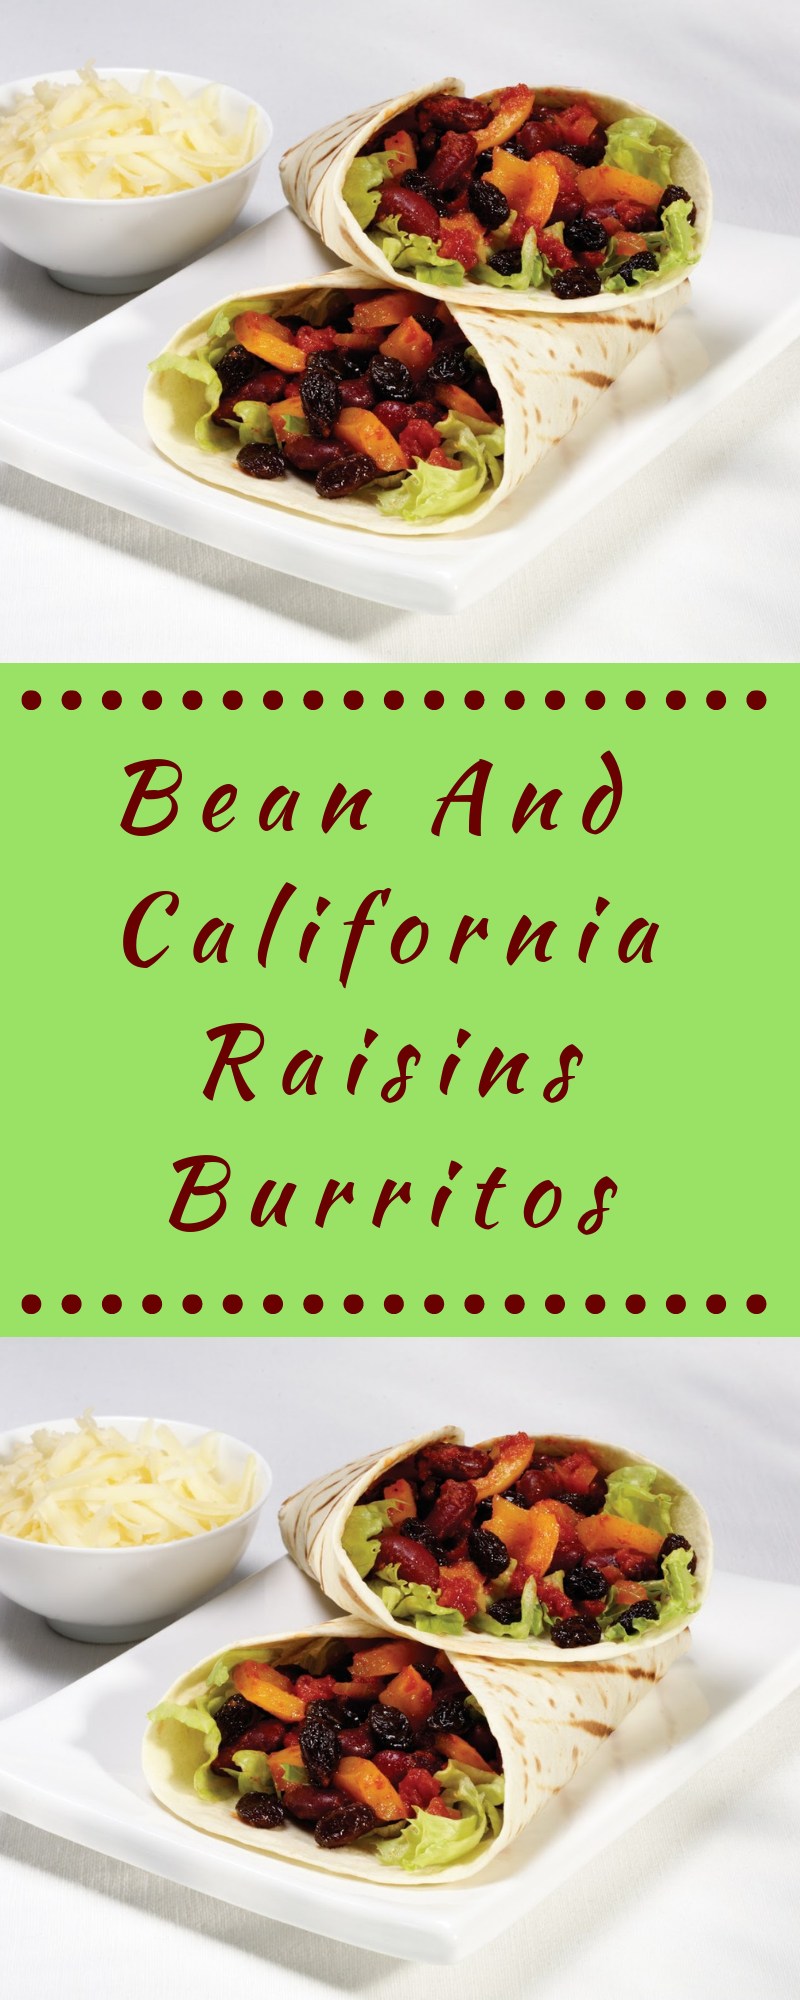 Bean And California Raisins Burritos